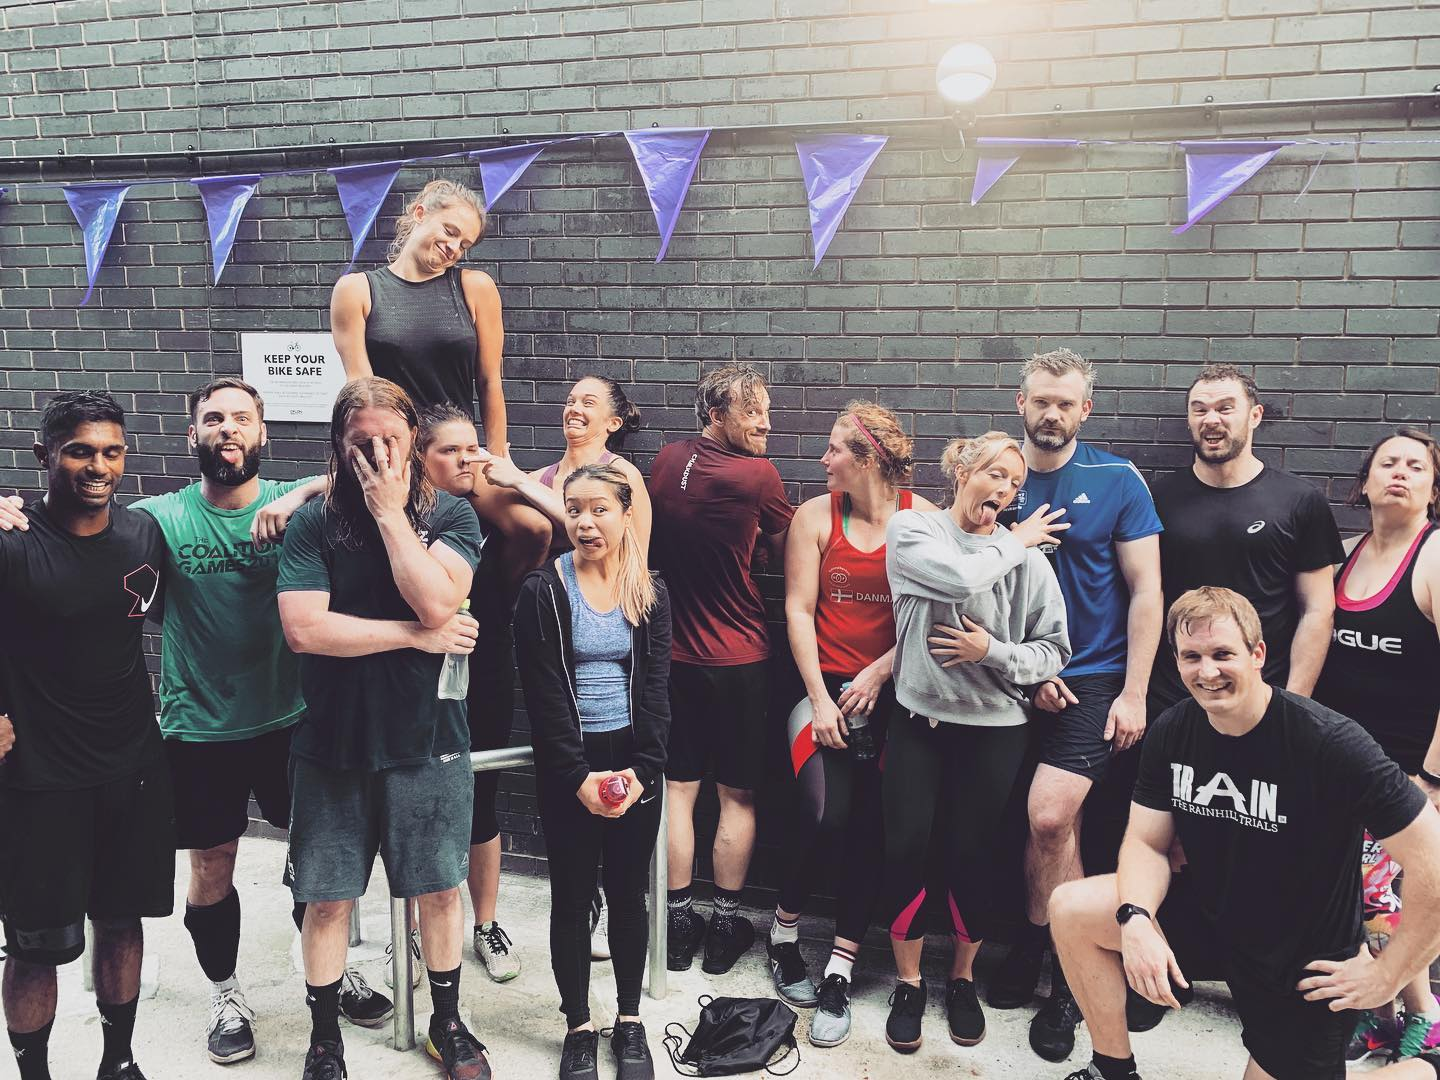 Crossfit London: finding a great community.